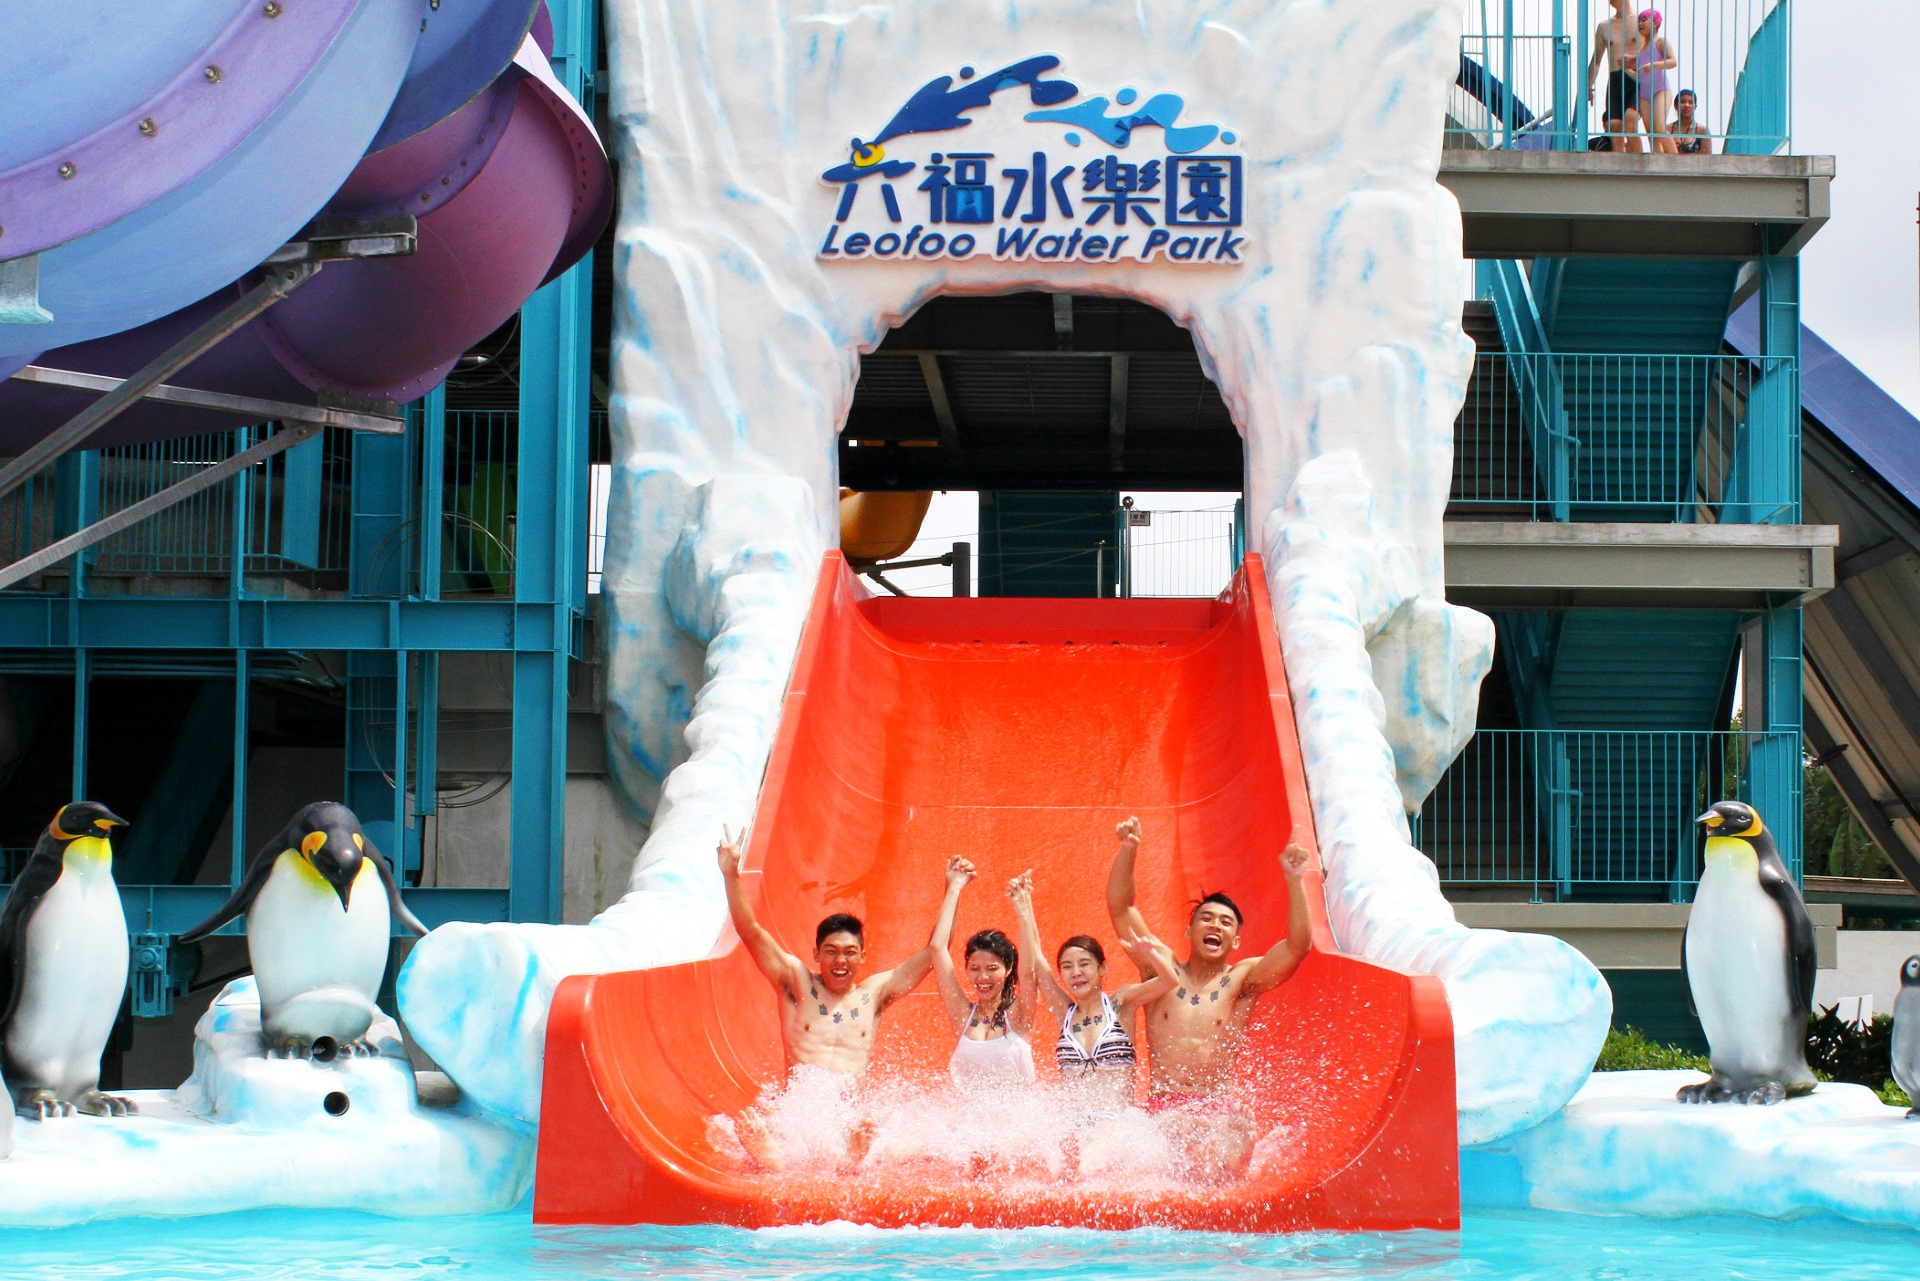 Image from Leofoo Water Park/Facebook